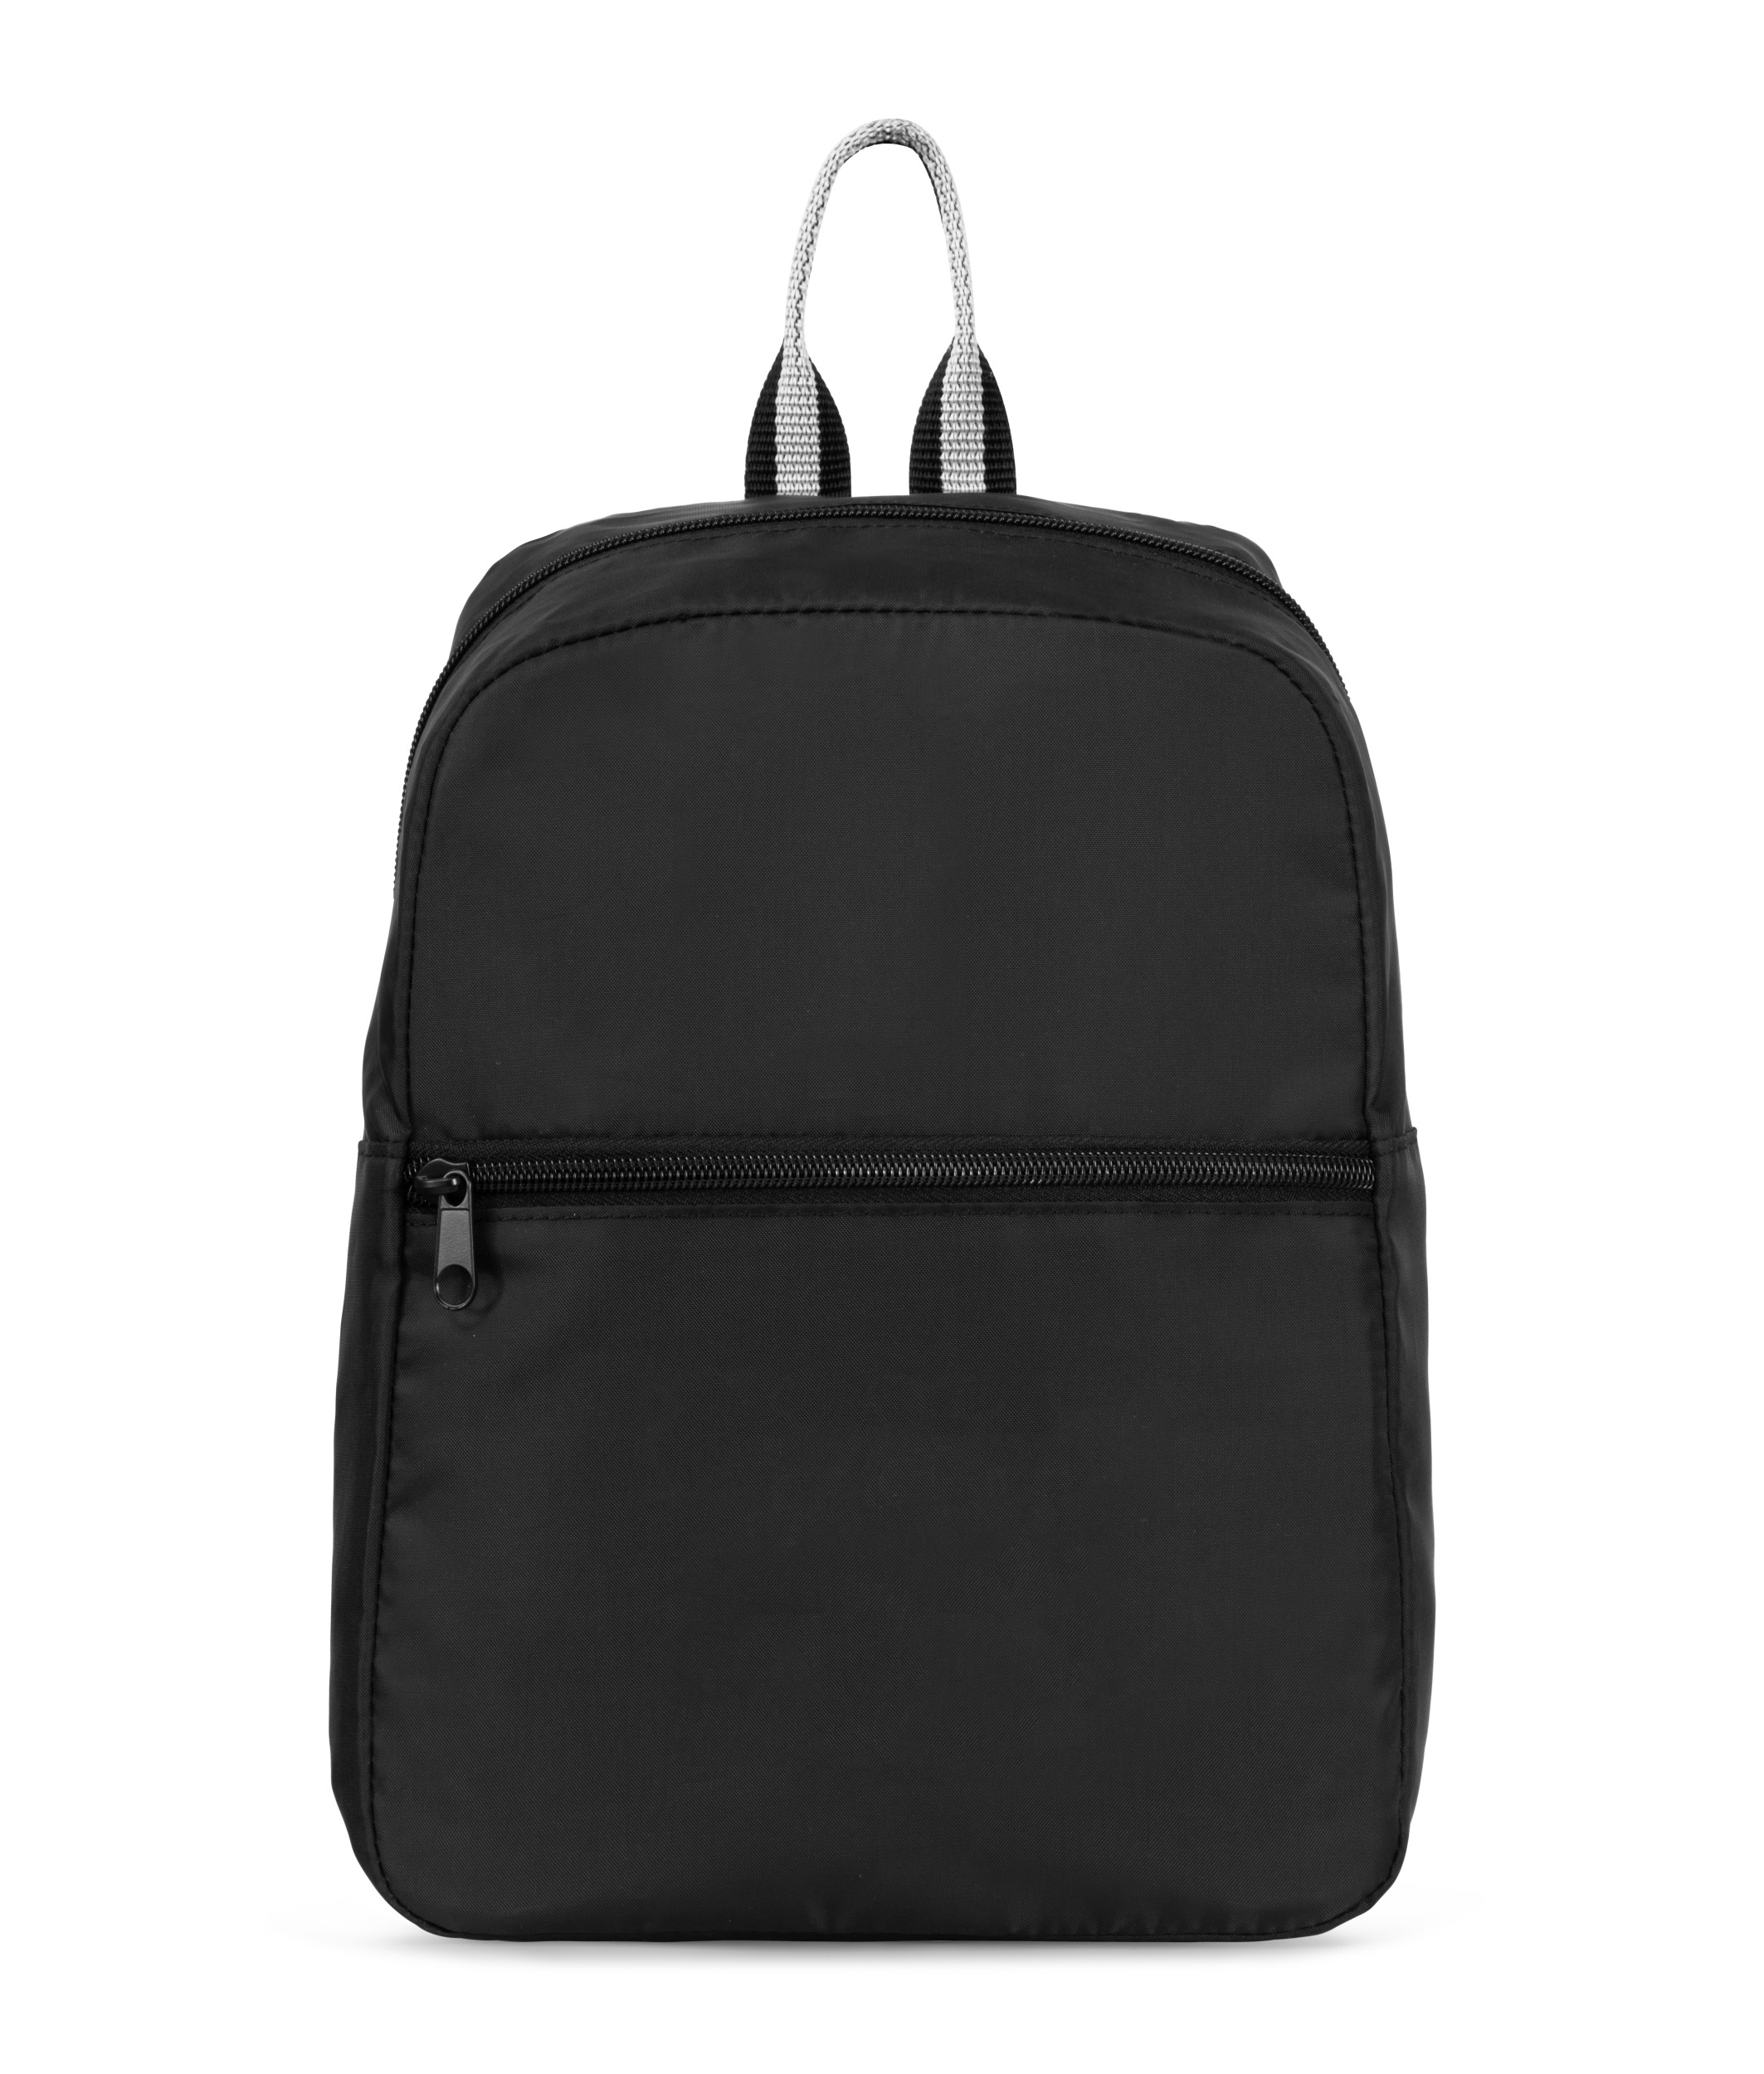 Gemline 100066 - Moto Mini Backpack